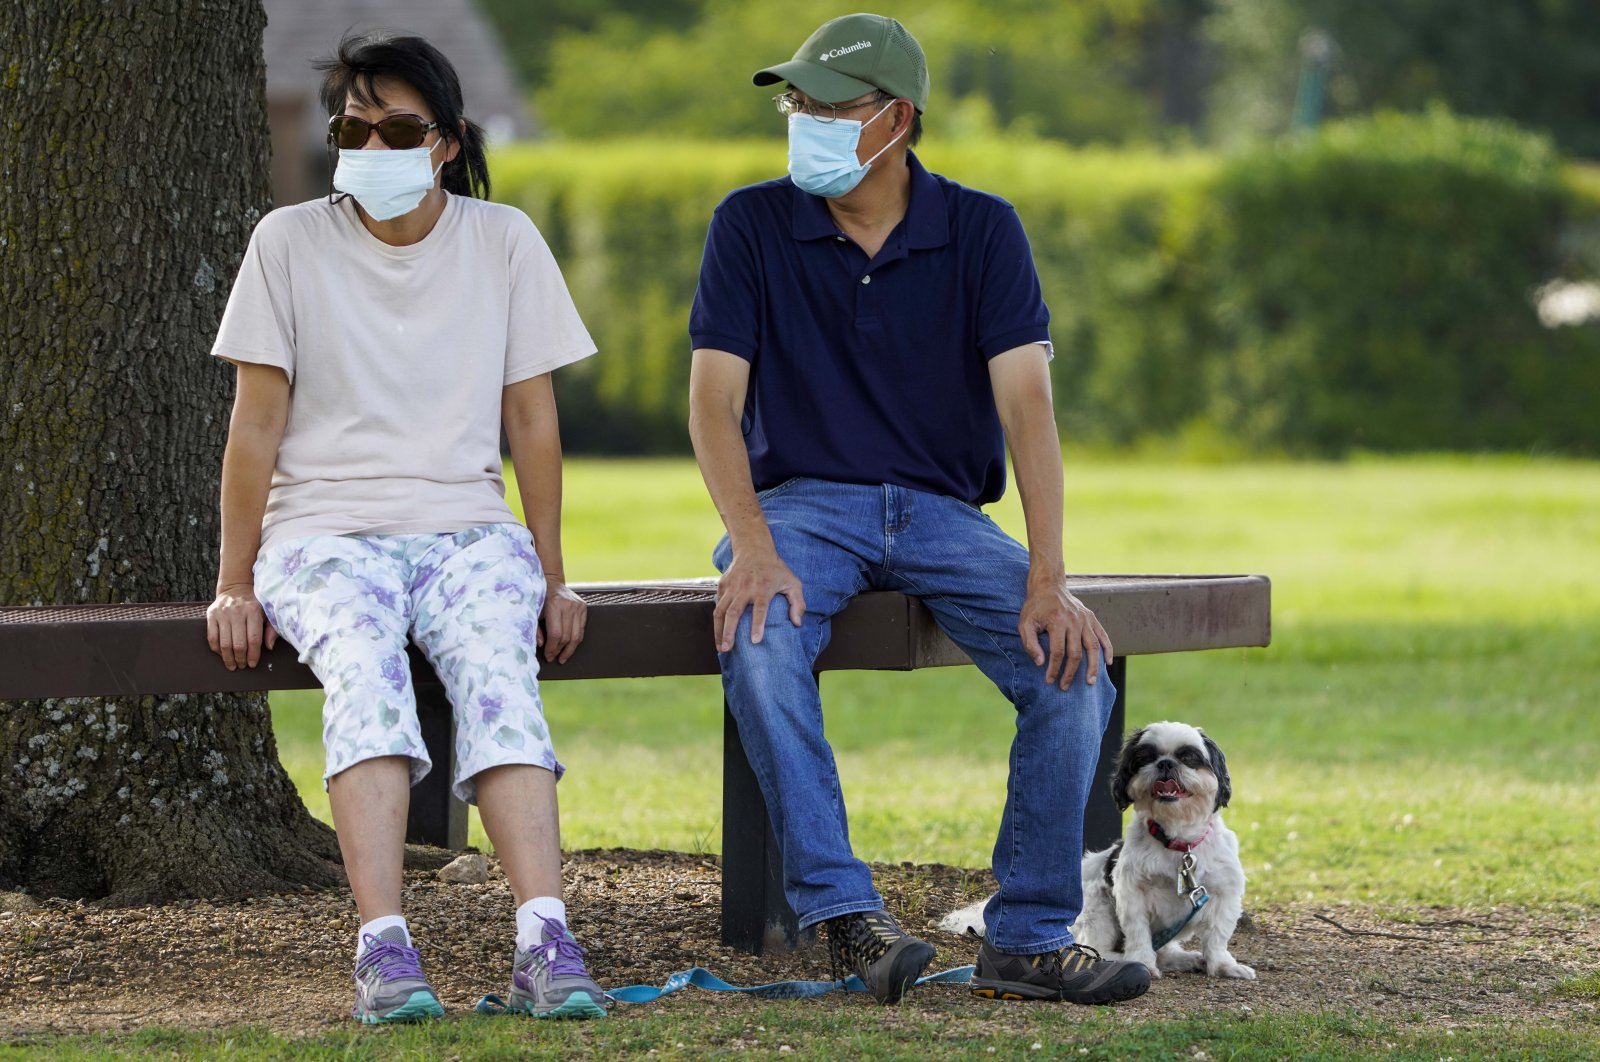 People wear face masks as they sit with their dog at Custer Park in Richardson, Texas, U.S., July 2, 2020. (The Dallas Morning News via AP)